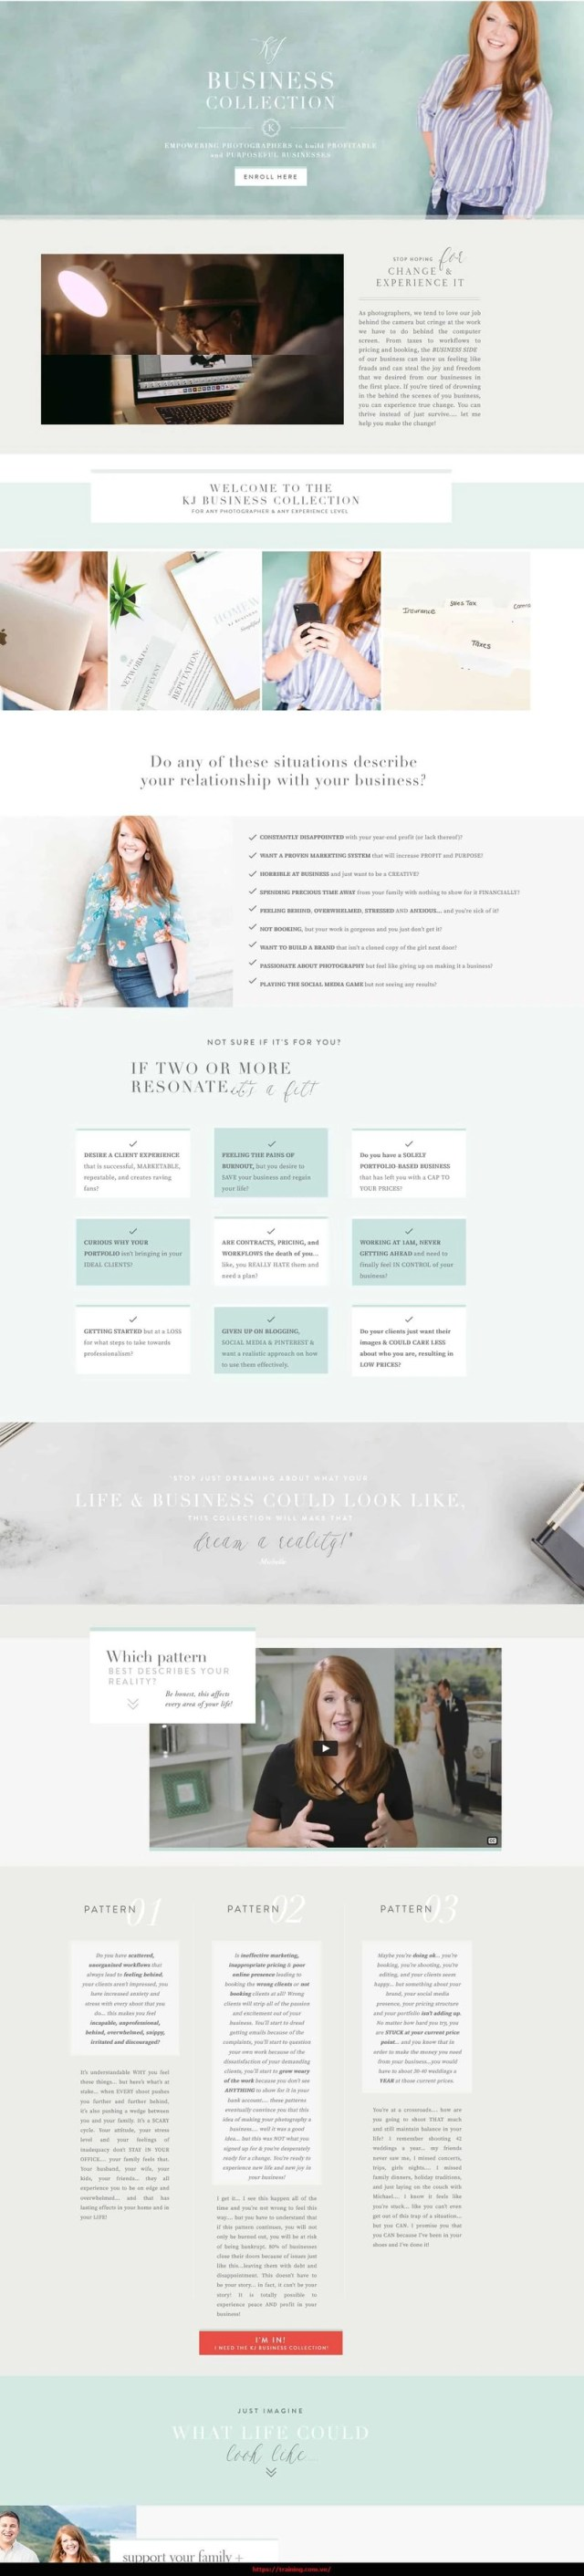 KJ Business Collection by Katelyn James Sales page